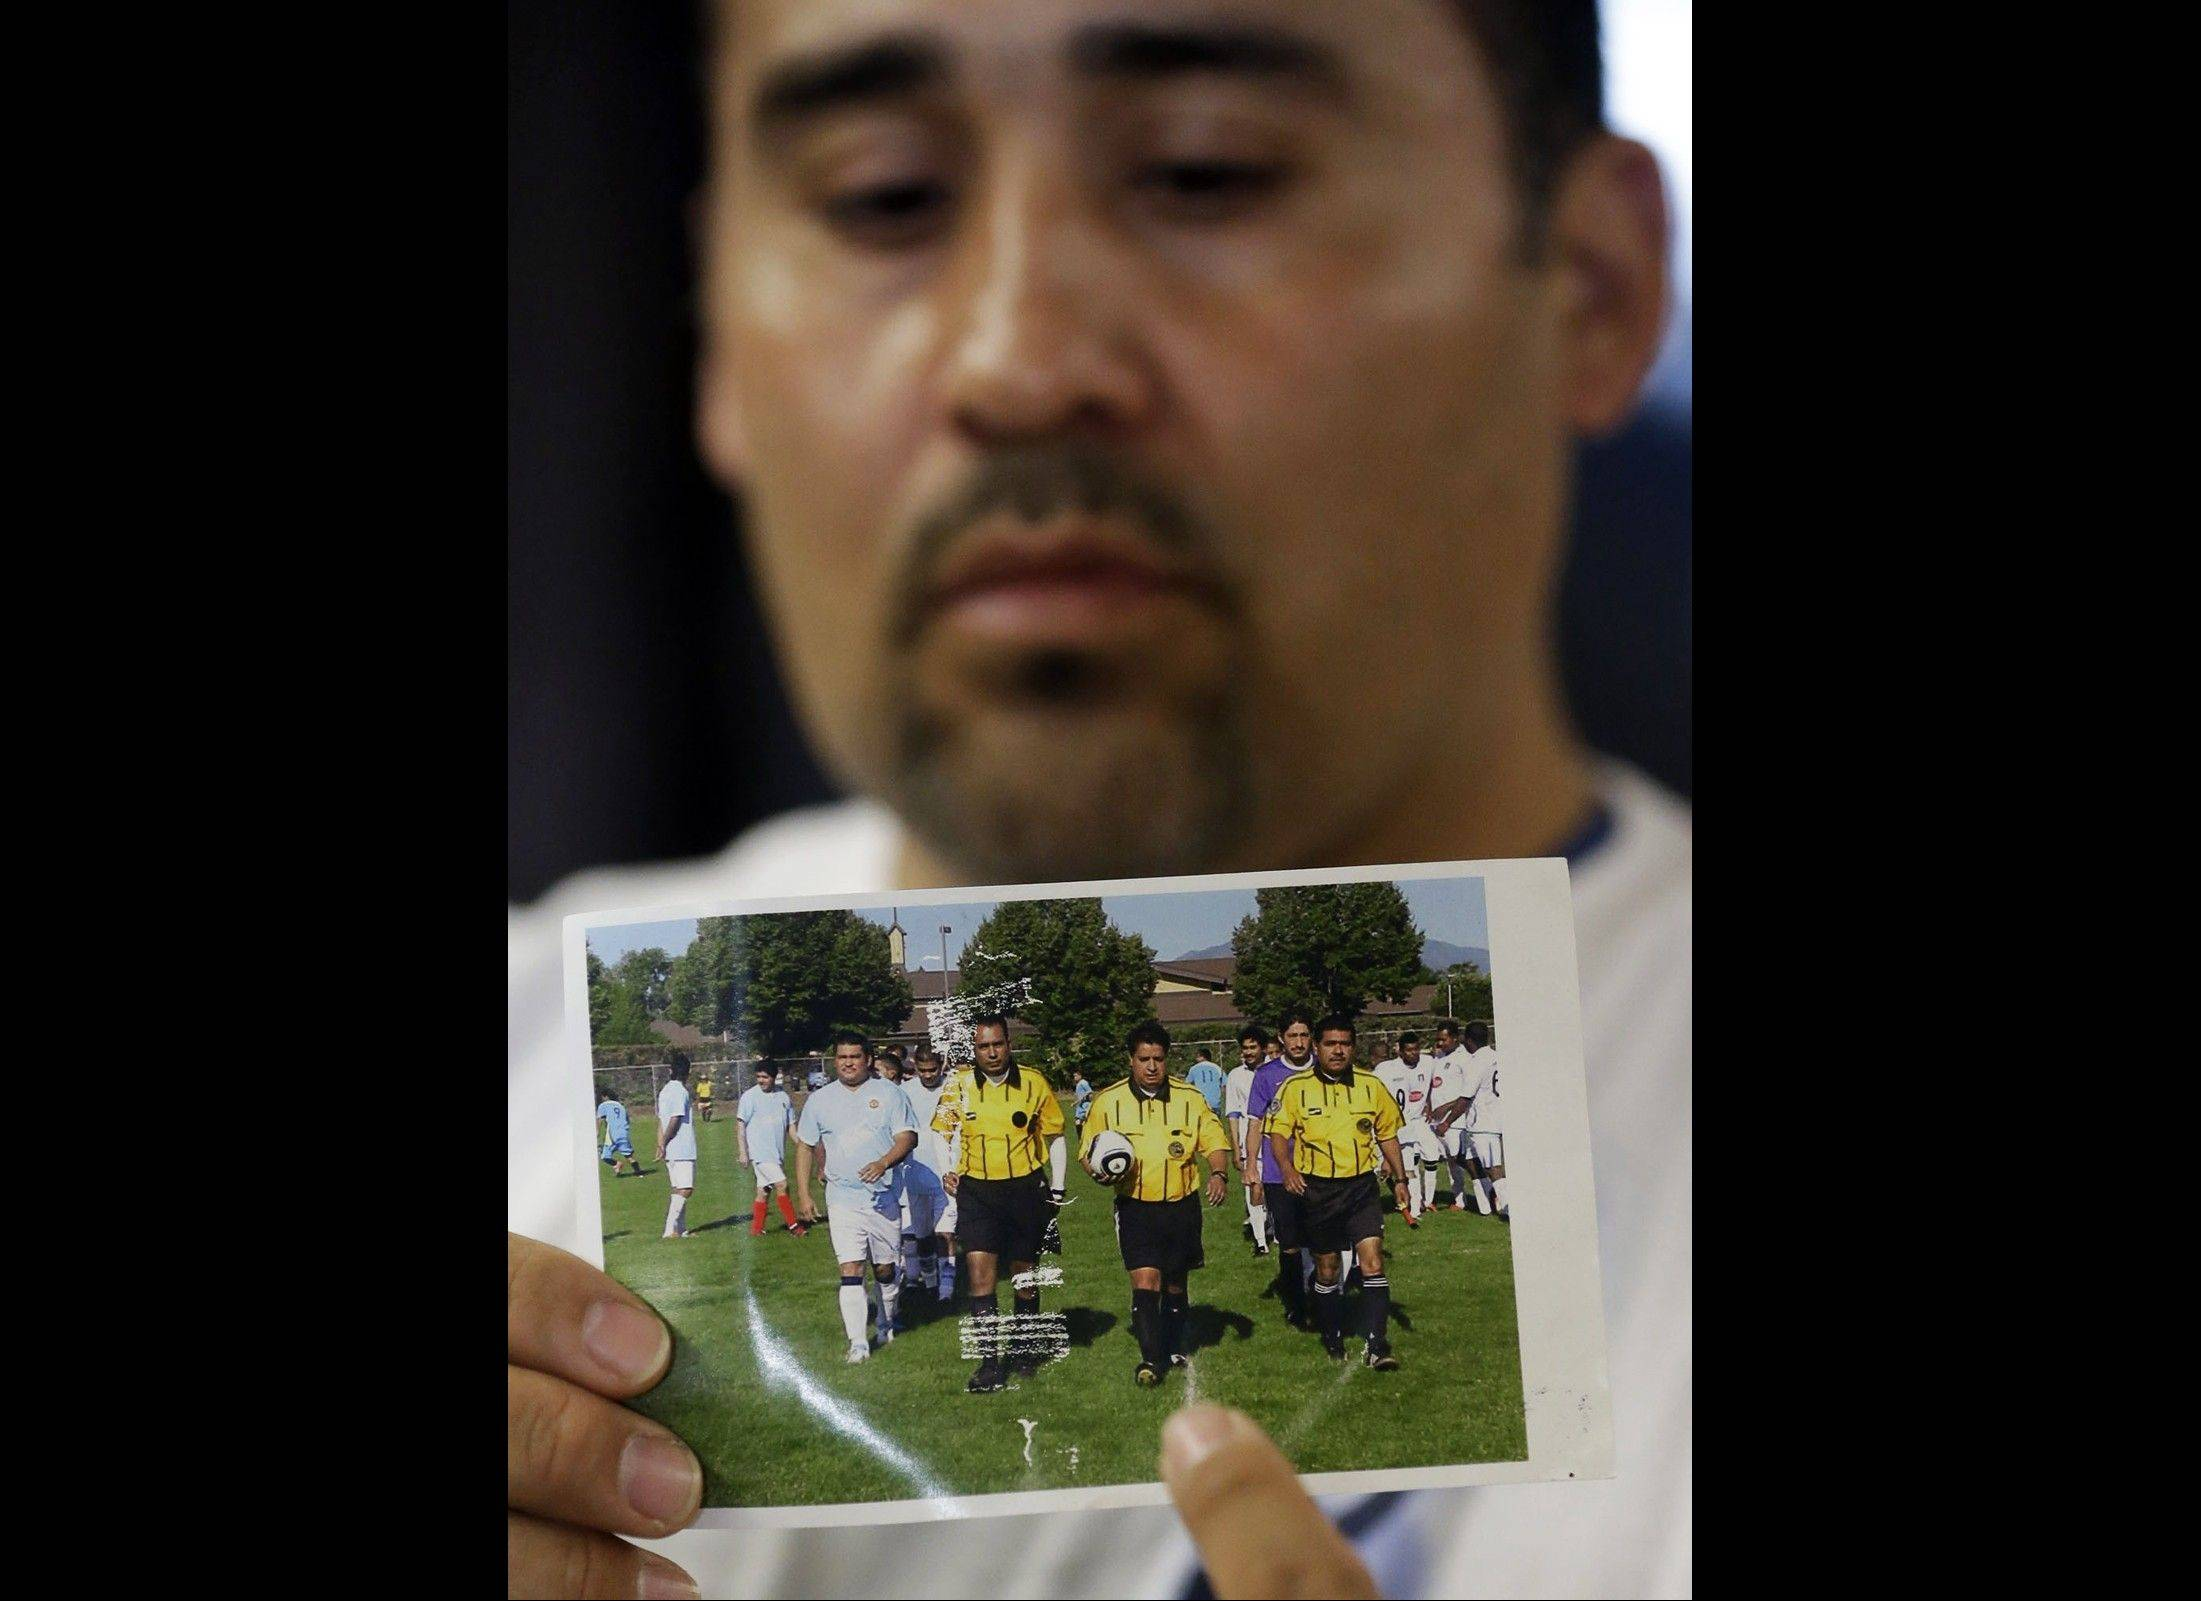 Jose Lopez points to an undated photo of Ricardo Portillo, center, his brother-in-law, following a news conference at Intermountain Medical Center in Murray, Utah. Portillo, a 46-year-old soccer referee who was punched by a teenage player during a game and later slipped into a coma, died Saturday night, police said.